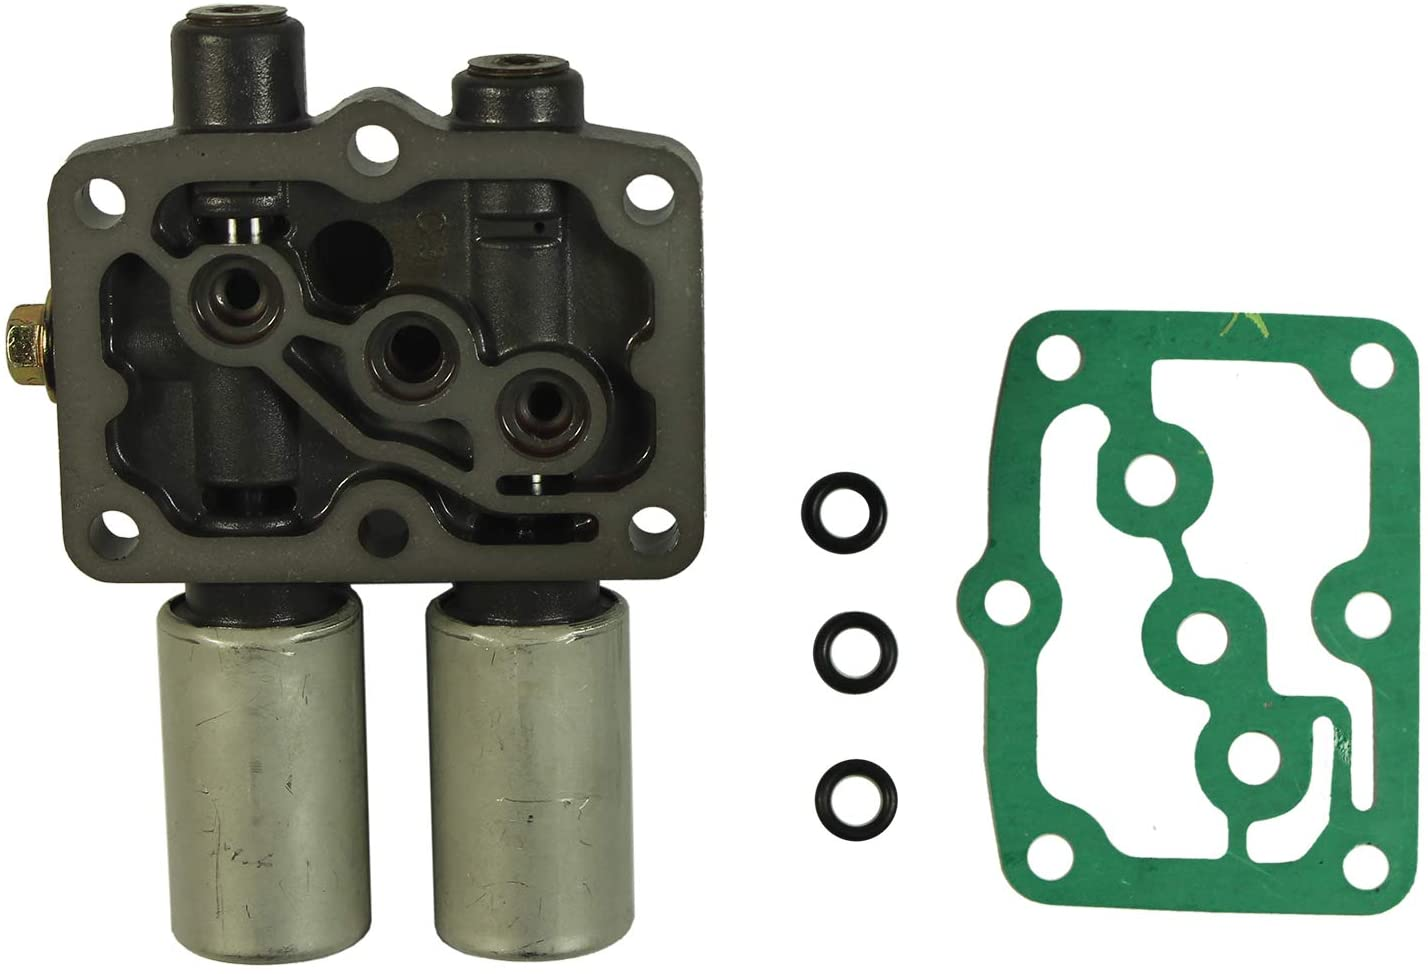 JDMSPEED New Transmission Dual Linear Shift Solenoid With Gasket Replacement For Honda Acura 1998 on